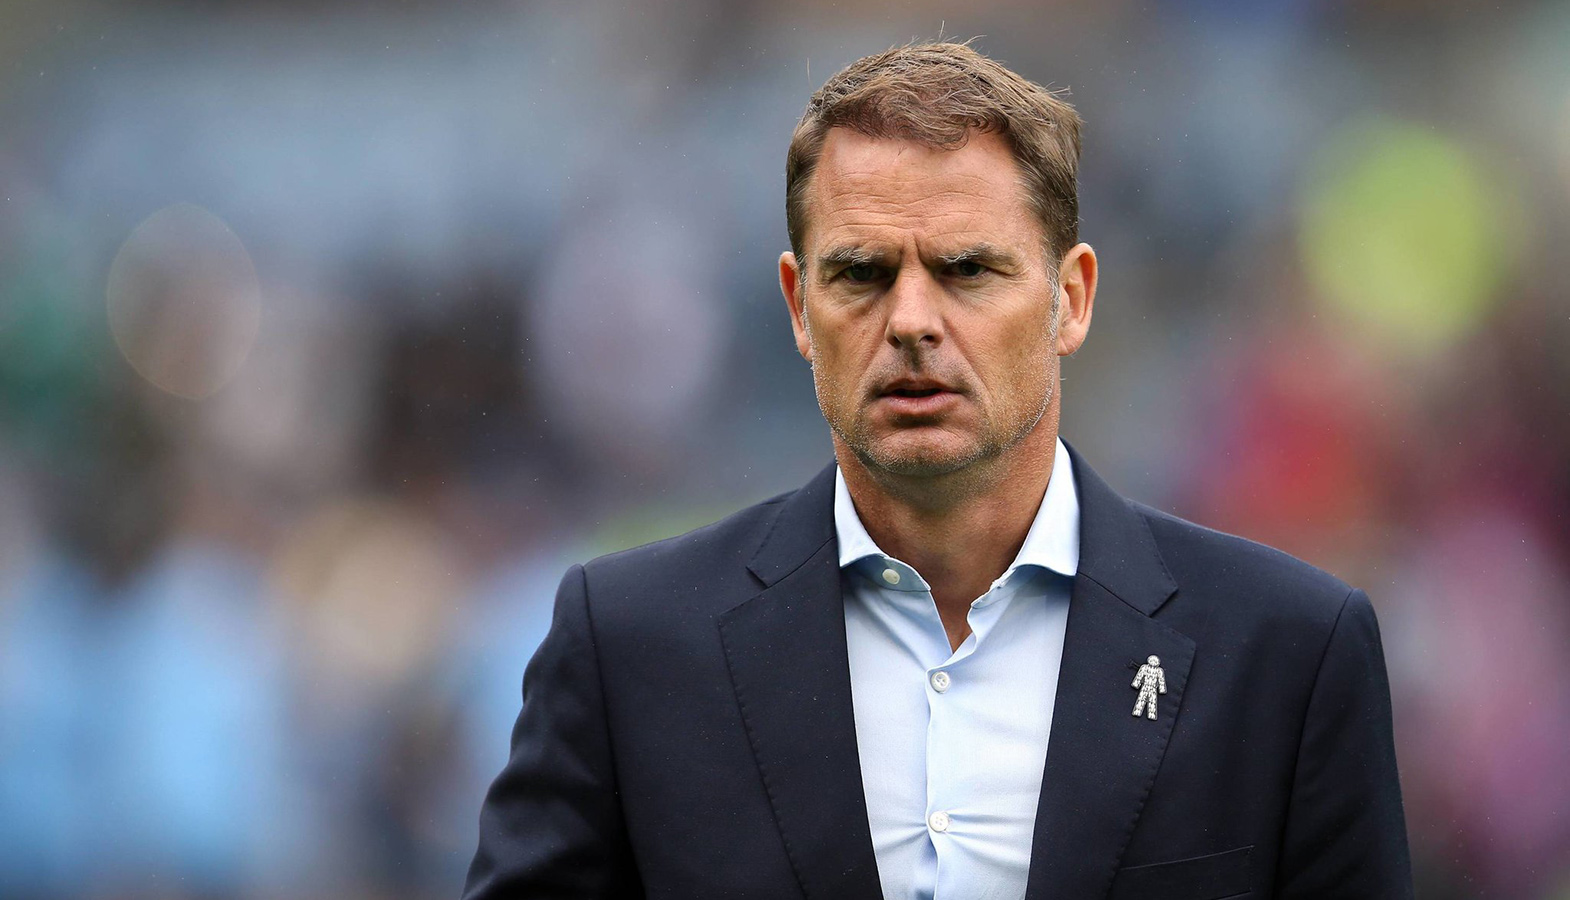 Frank De Boer Was Appointed Head Coach Of The Netherlands National Football Team